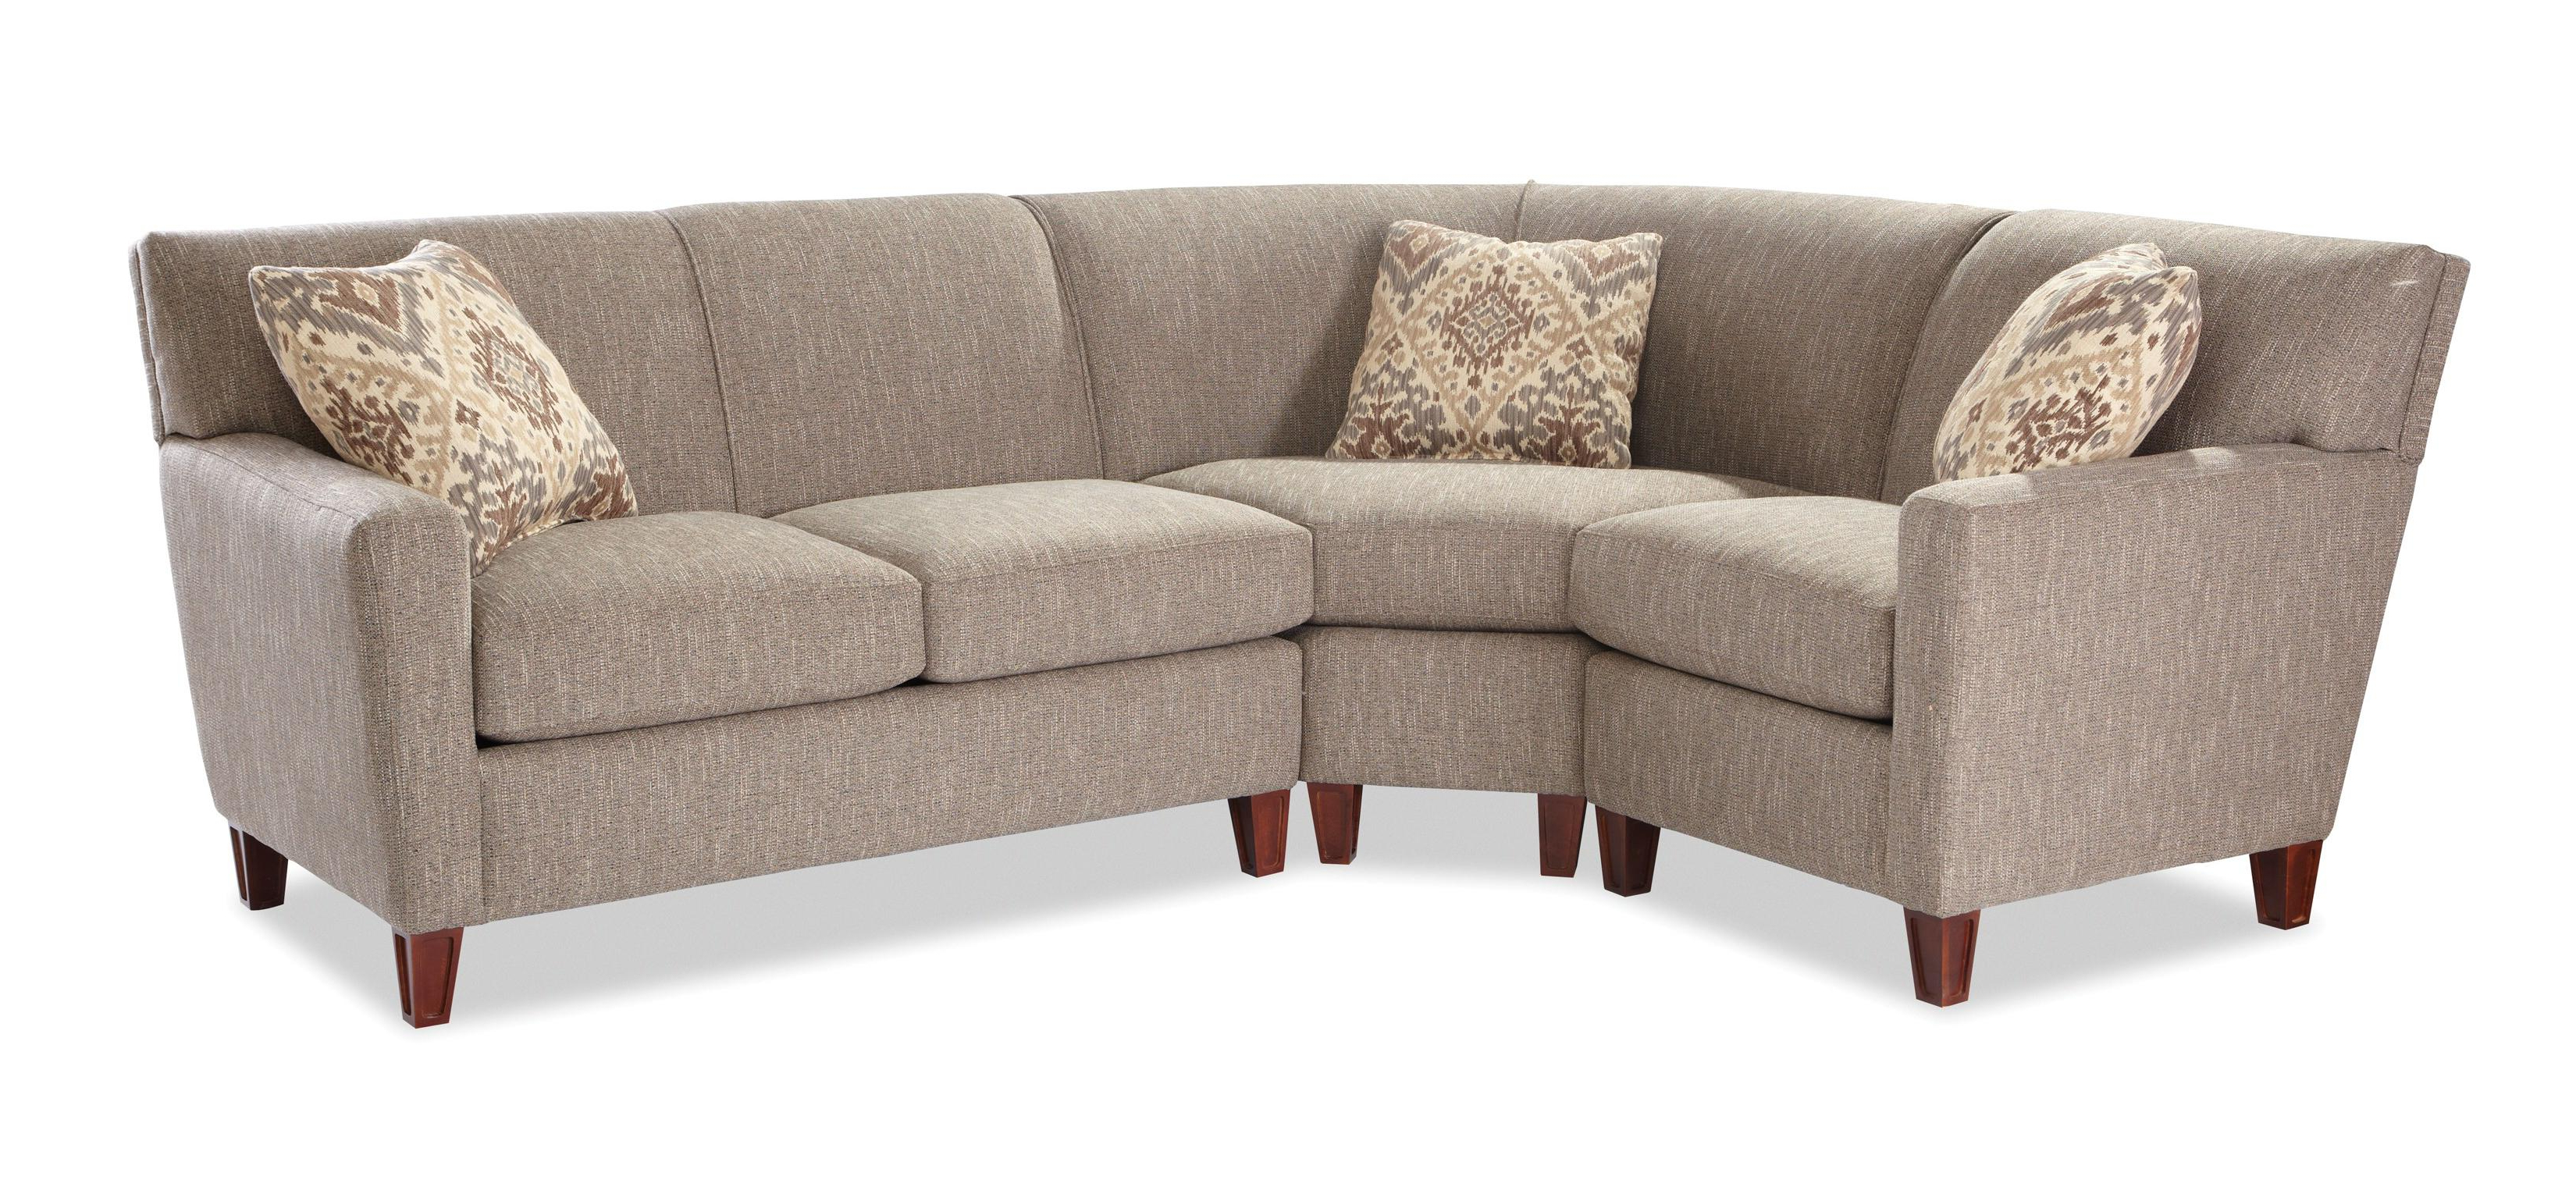 Recent Craftmaster 7864 Three Piece Sectional Sofa With Raf Loveseat For Josephine 2 Piece Sectionals With Laf Sofa (View 20 of 20)